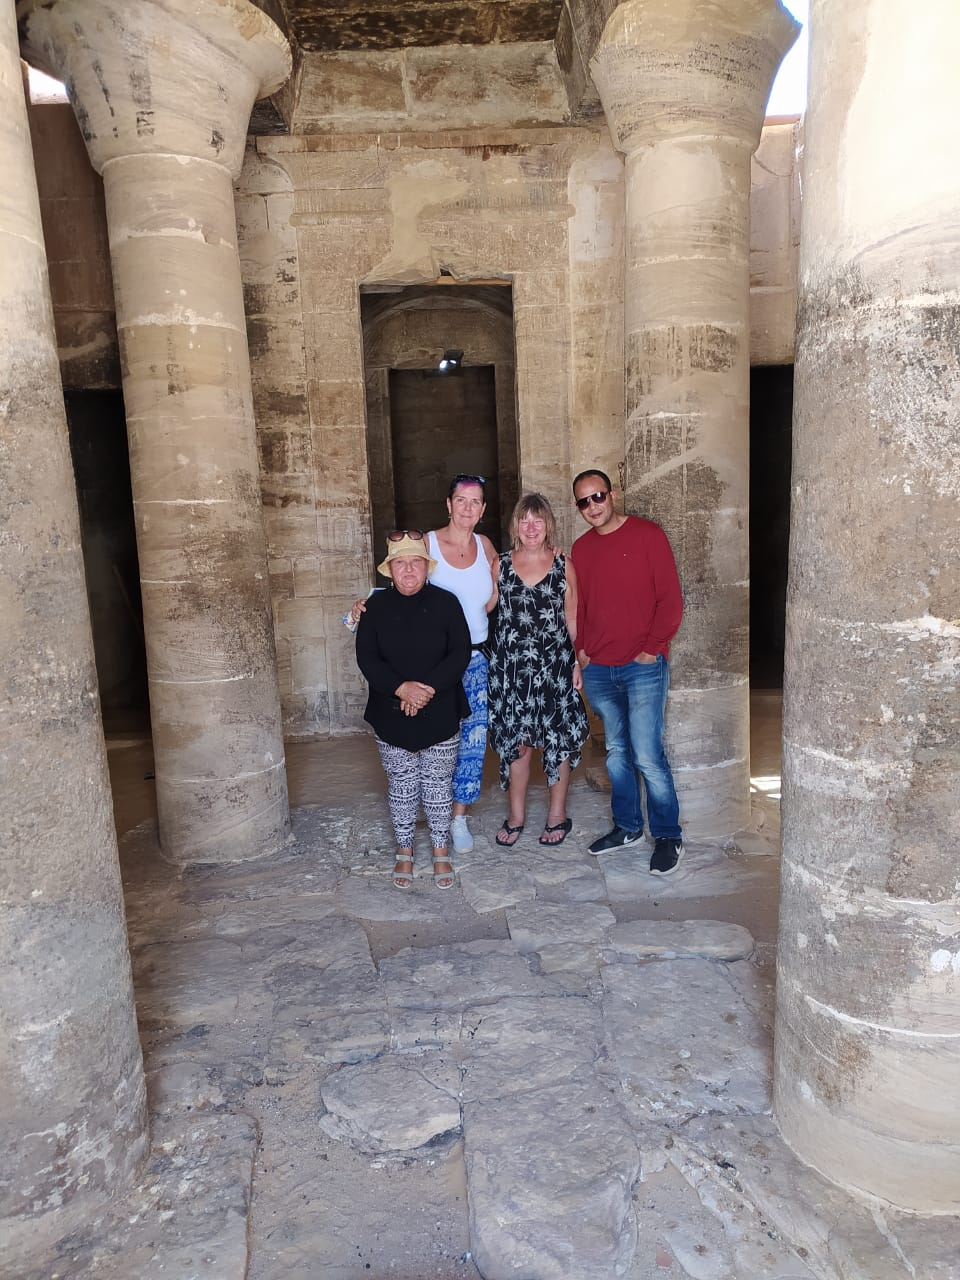 Saqqara and Memphis tour from the Airport | Layover Tour To Saqqara And Memphis From Cairo Airport.